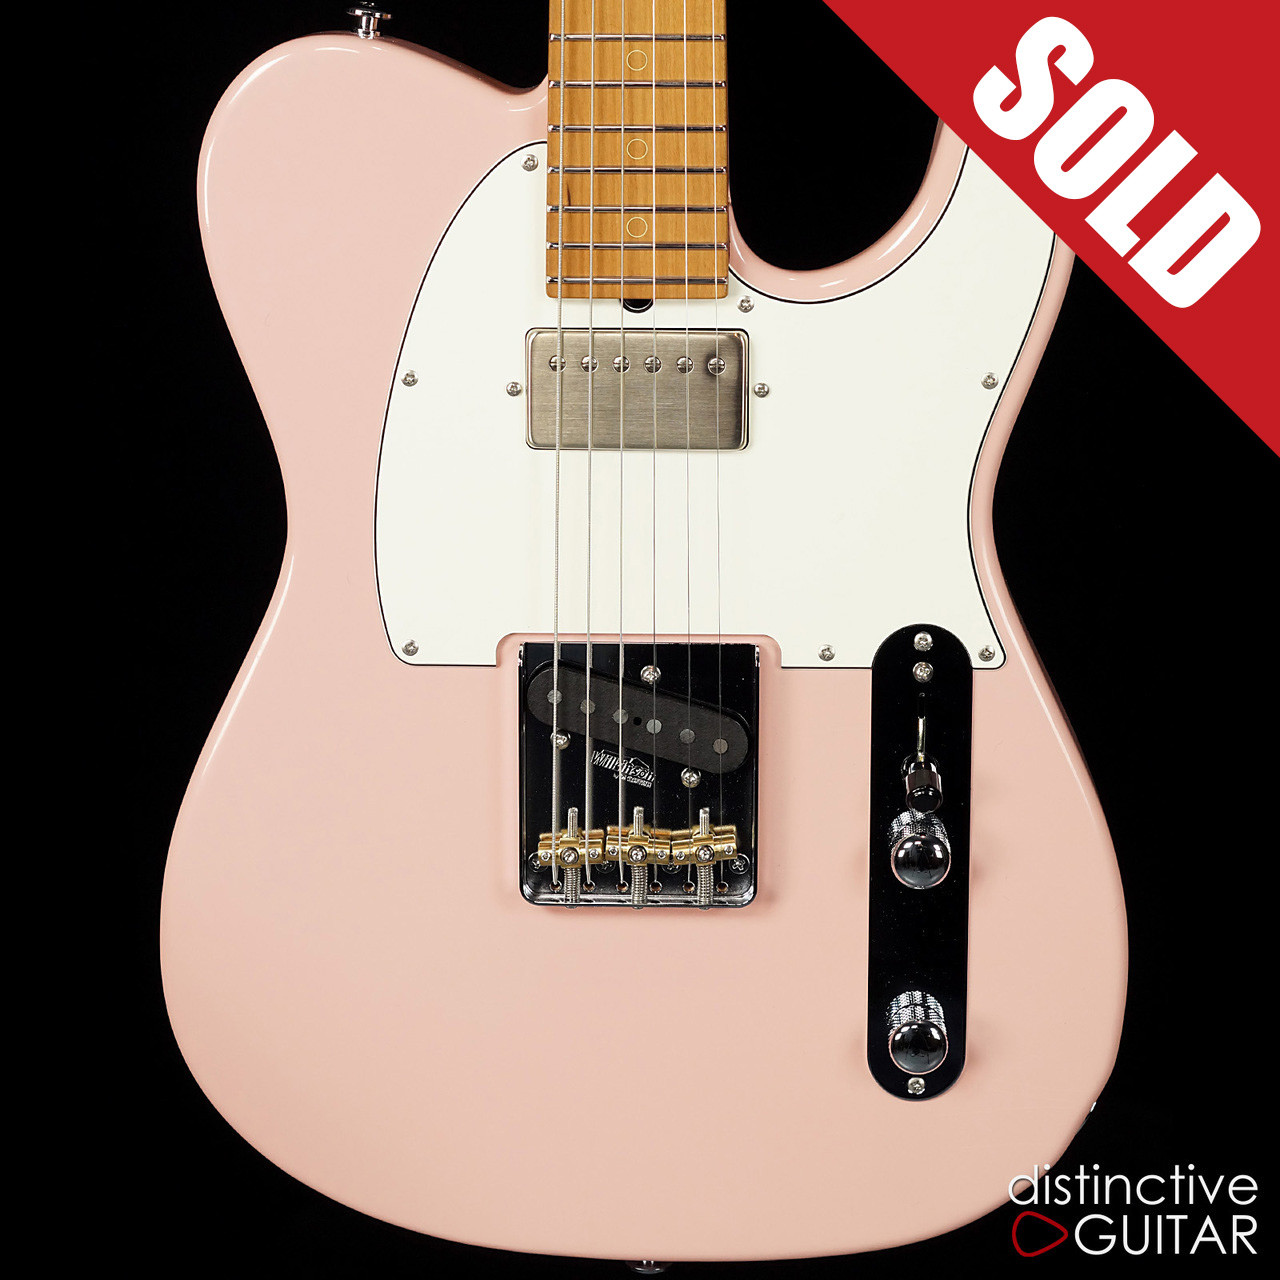 Suhr Classic T Wiring Diagram Guitar Antique Roasted Recovered Sinker Maple 10 Shell Pink Rh Distinctiveguitar Com Telecaster Pickup